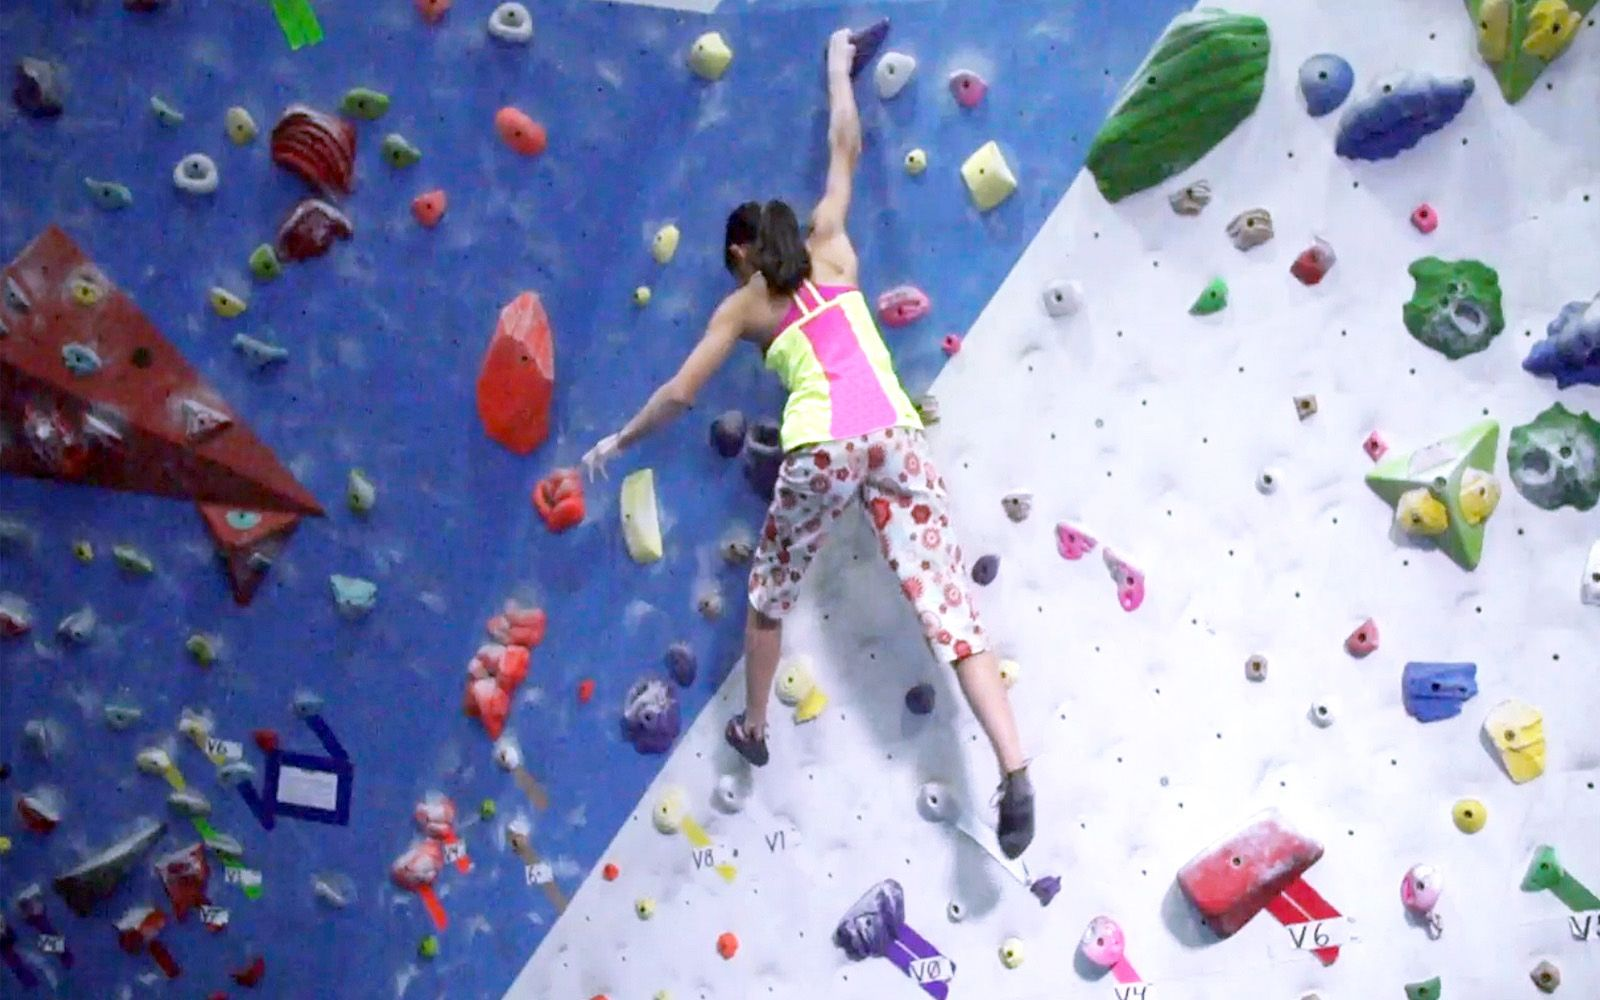 Ashima Shiraishi Could Become Best Female Climber In The